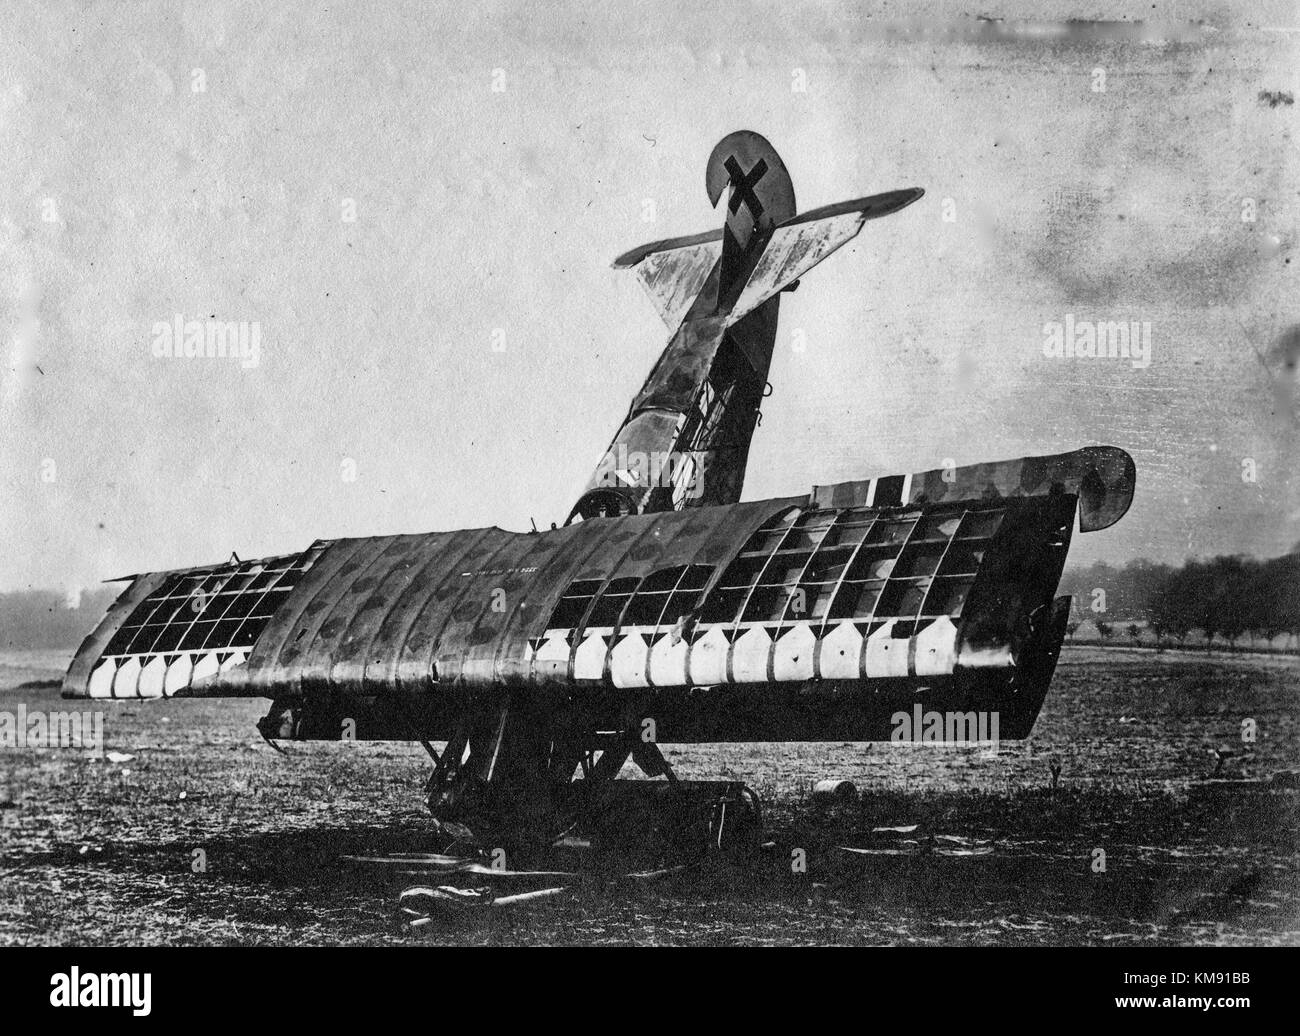 German plane destroyed by the Germans following the armistice - 1918 - World War I - Stock Image